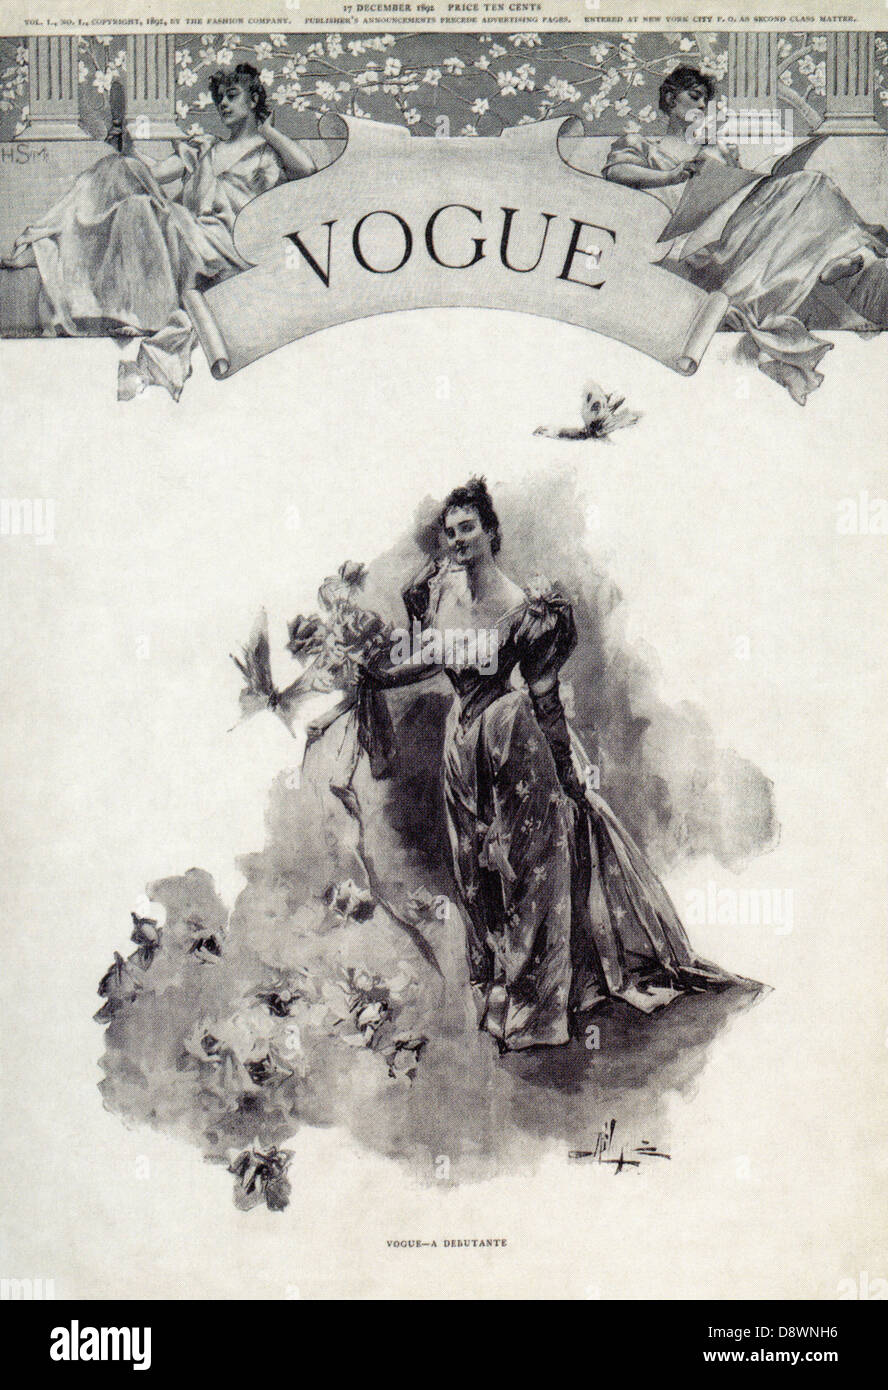 Vintage french vogue magazine covers